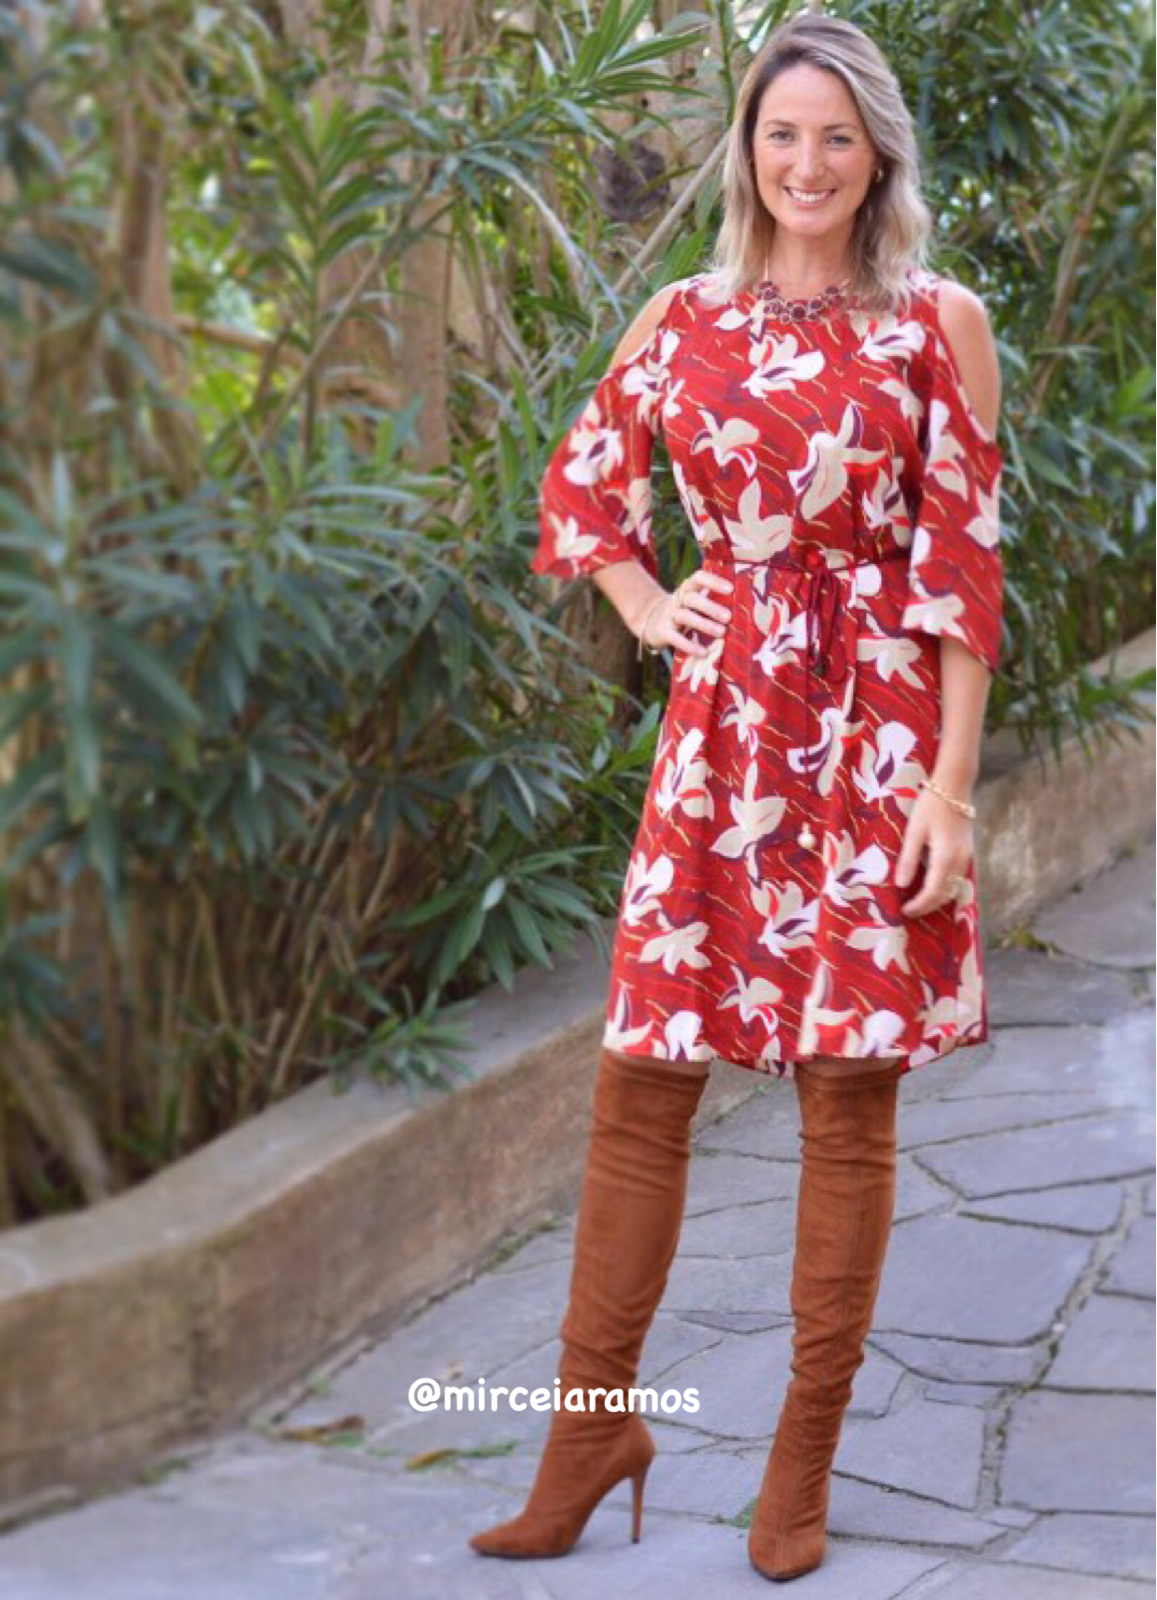 Look de trabalho - look do dia - look corporativo - moda no trabalho - work outfit - office outfit - winter outfit - look executiva - look de frio - look de inverno - warm outfit - bota caramelo - bota Otk - vestido estampado - over the knee - dress floral